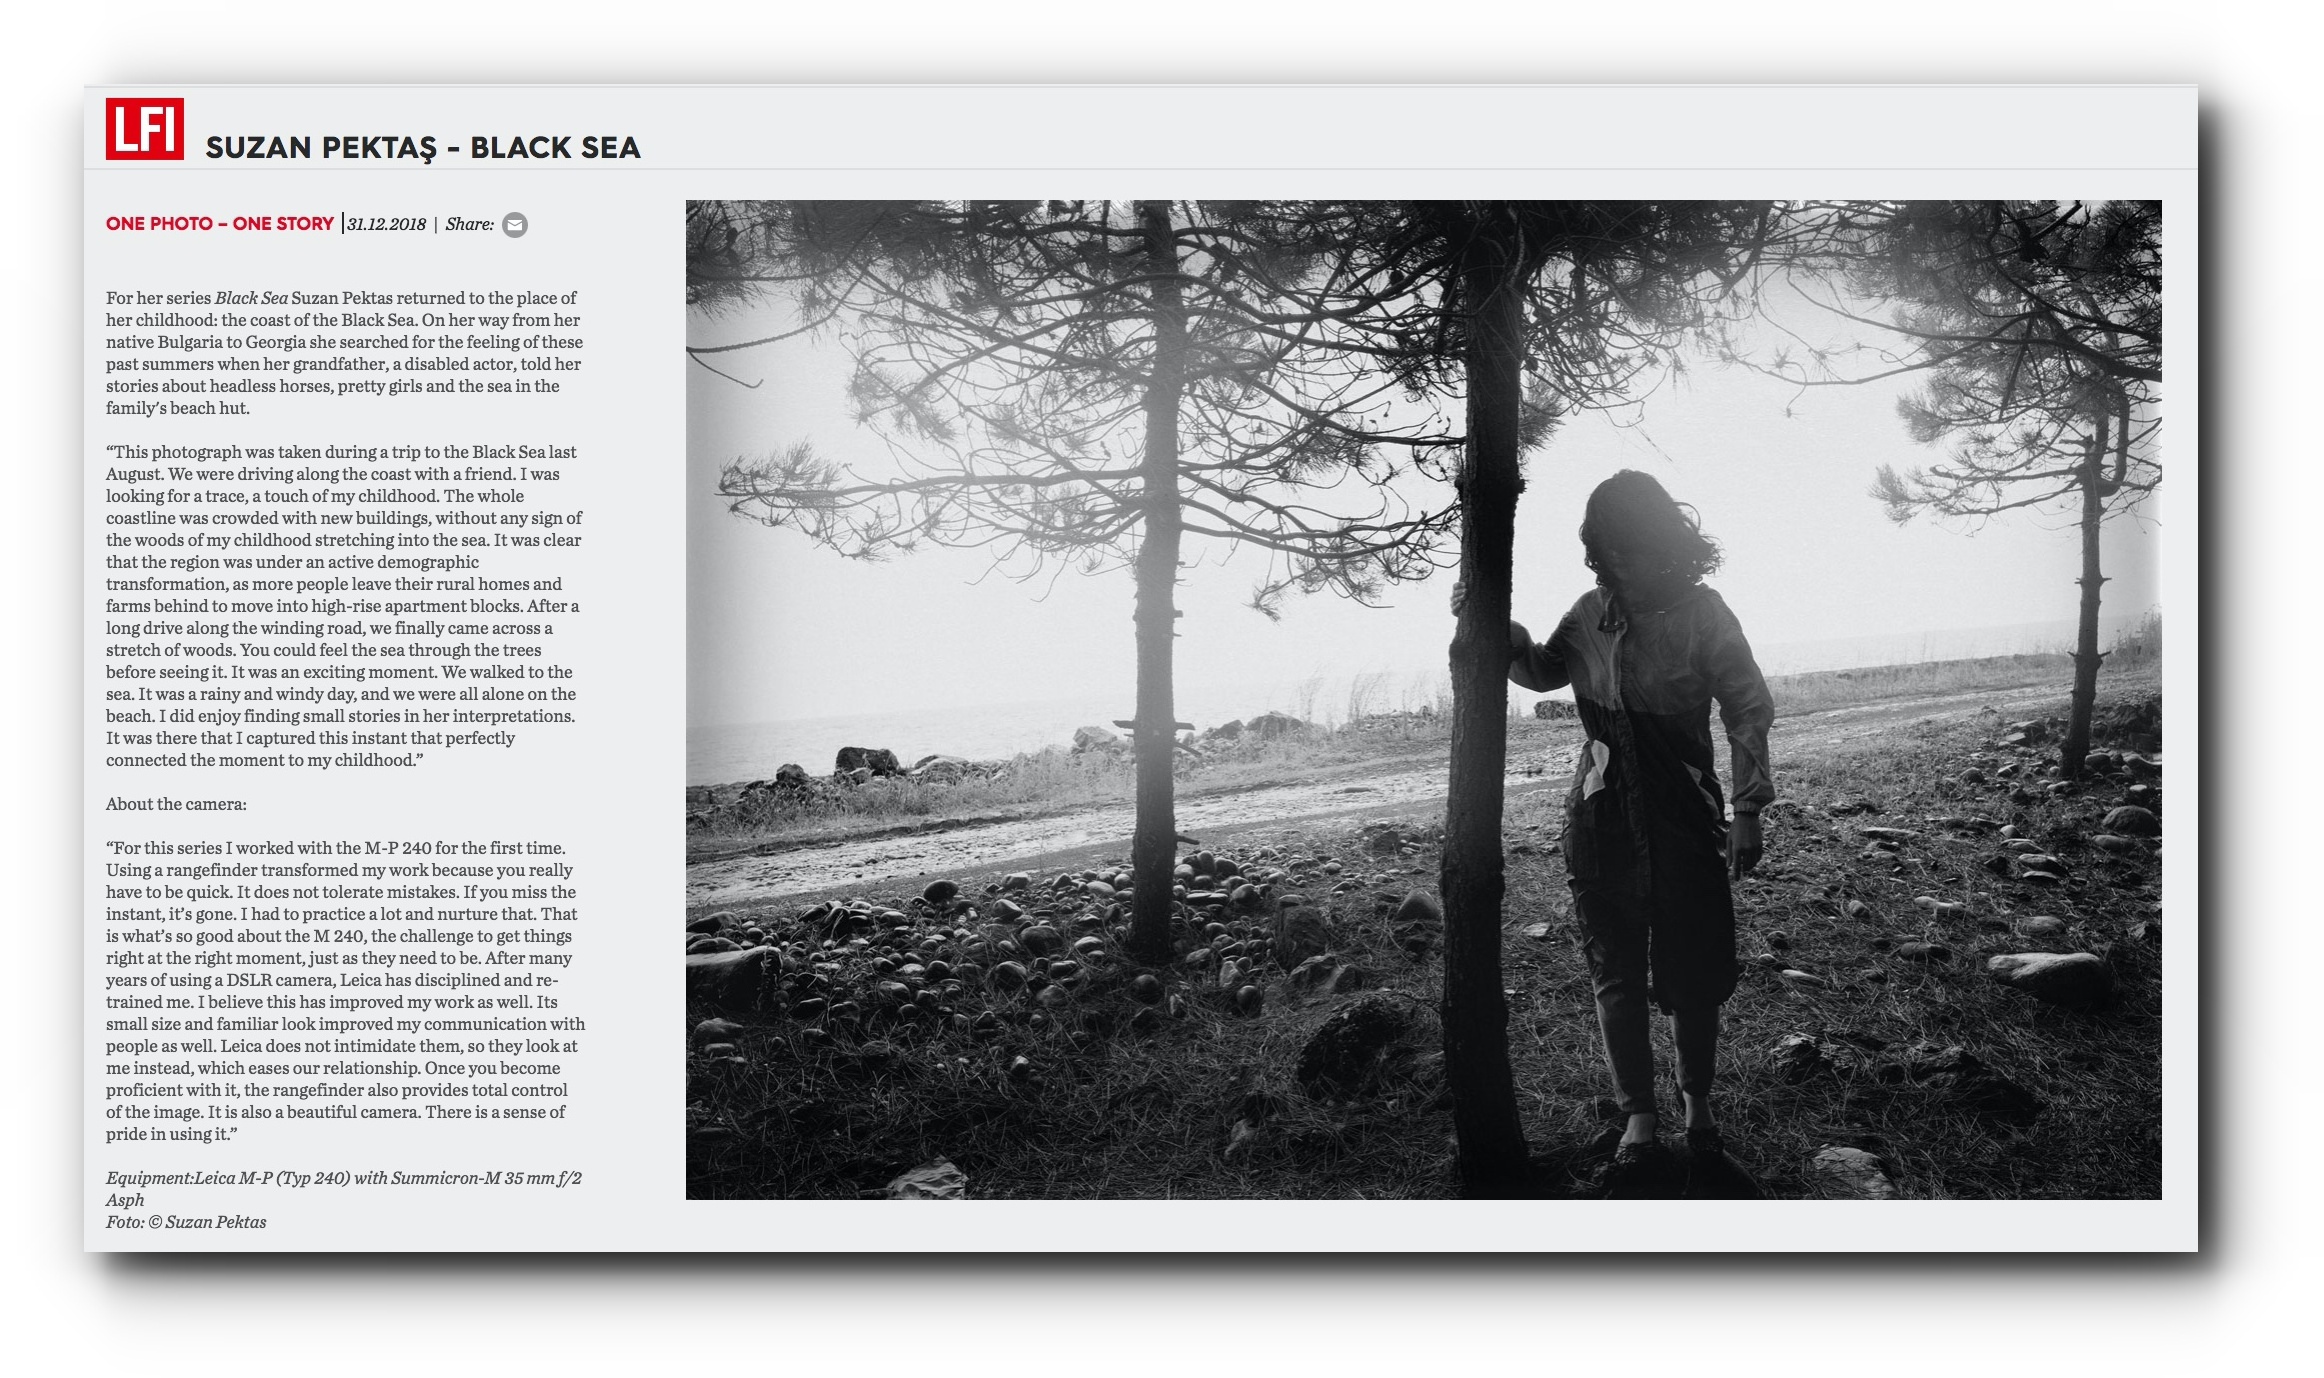 """One Photo - One Story from """"Black Sea"""" Series Featured in LFI Magazine - December, 2018"""